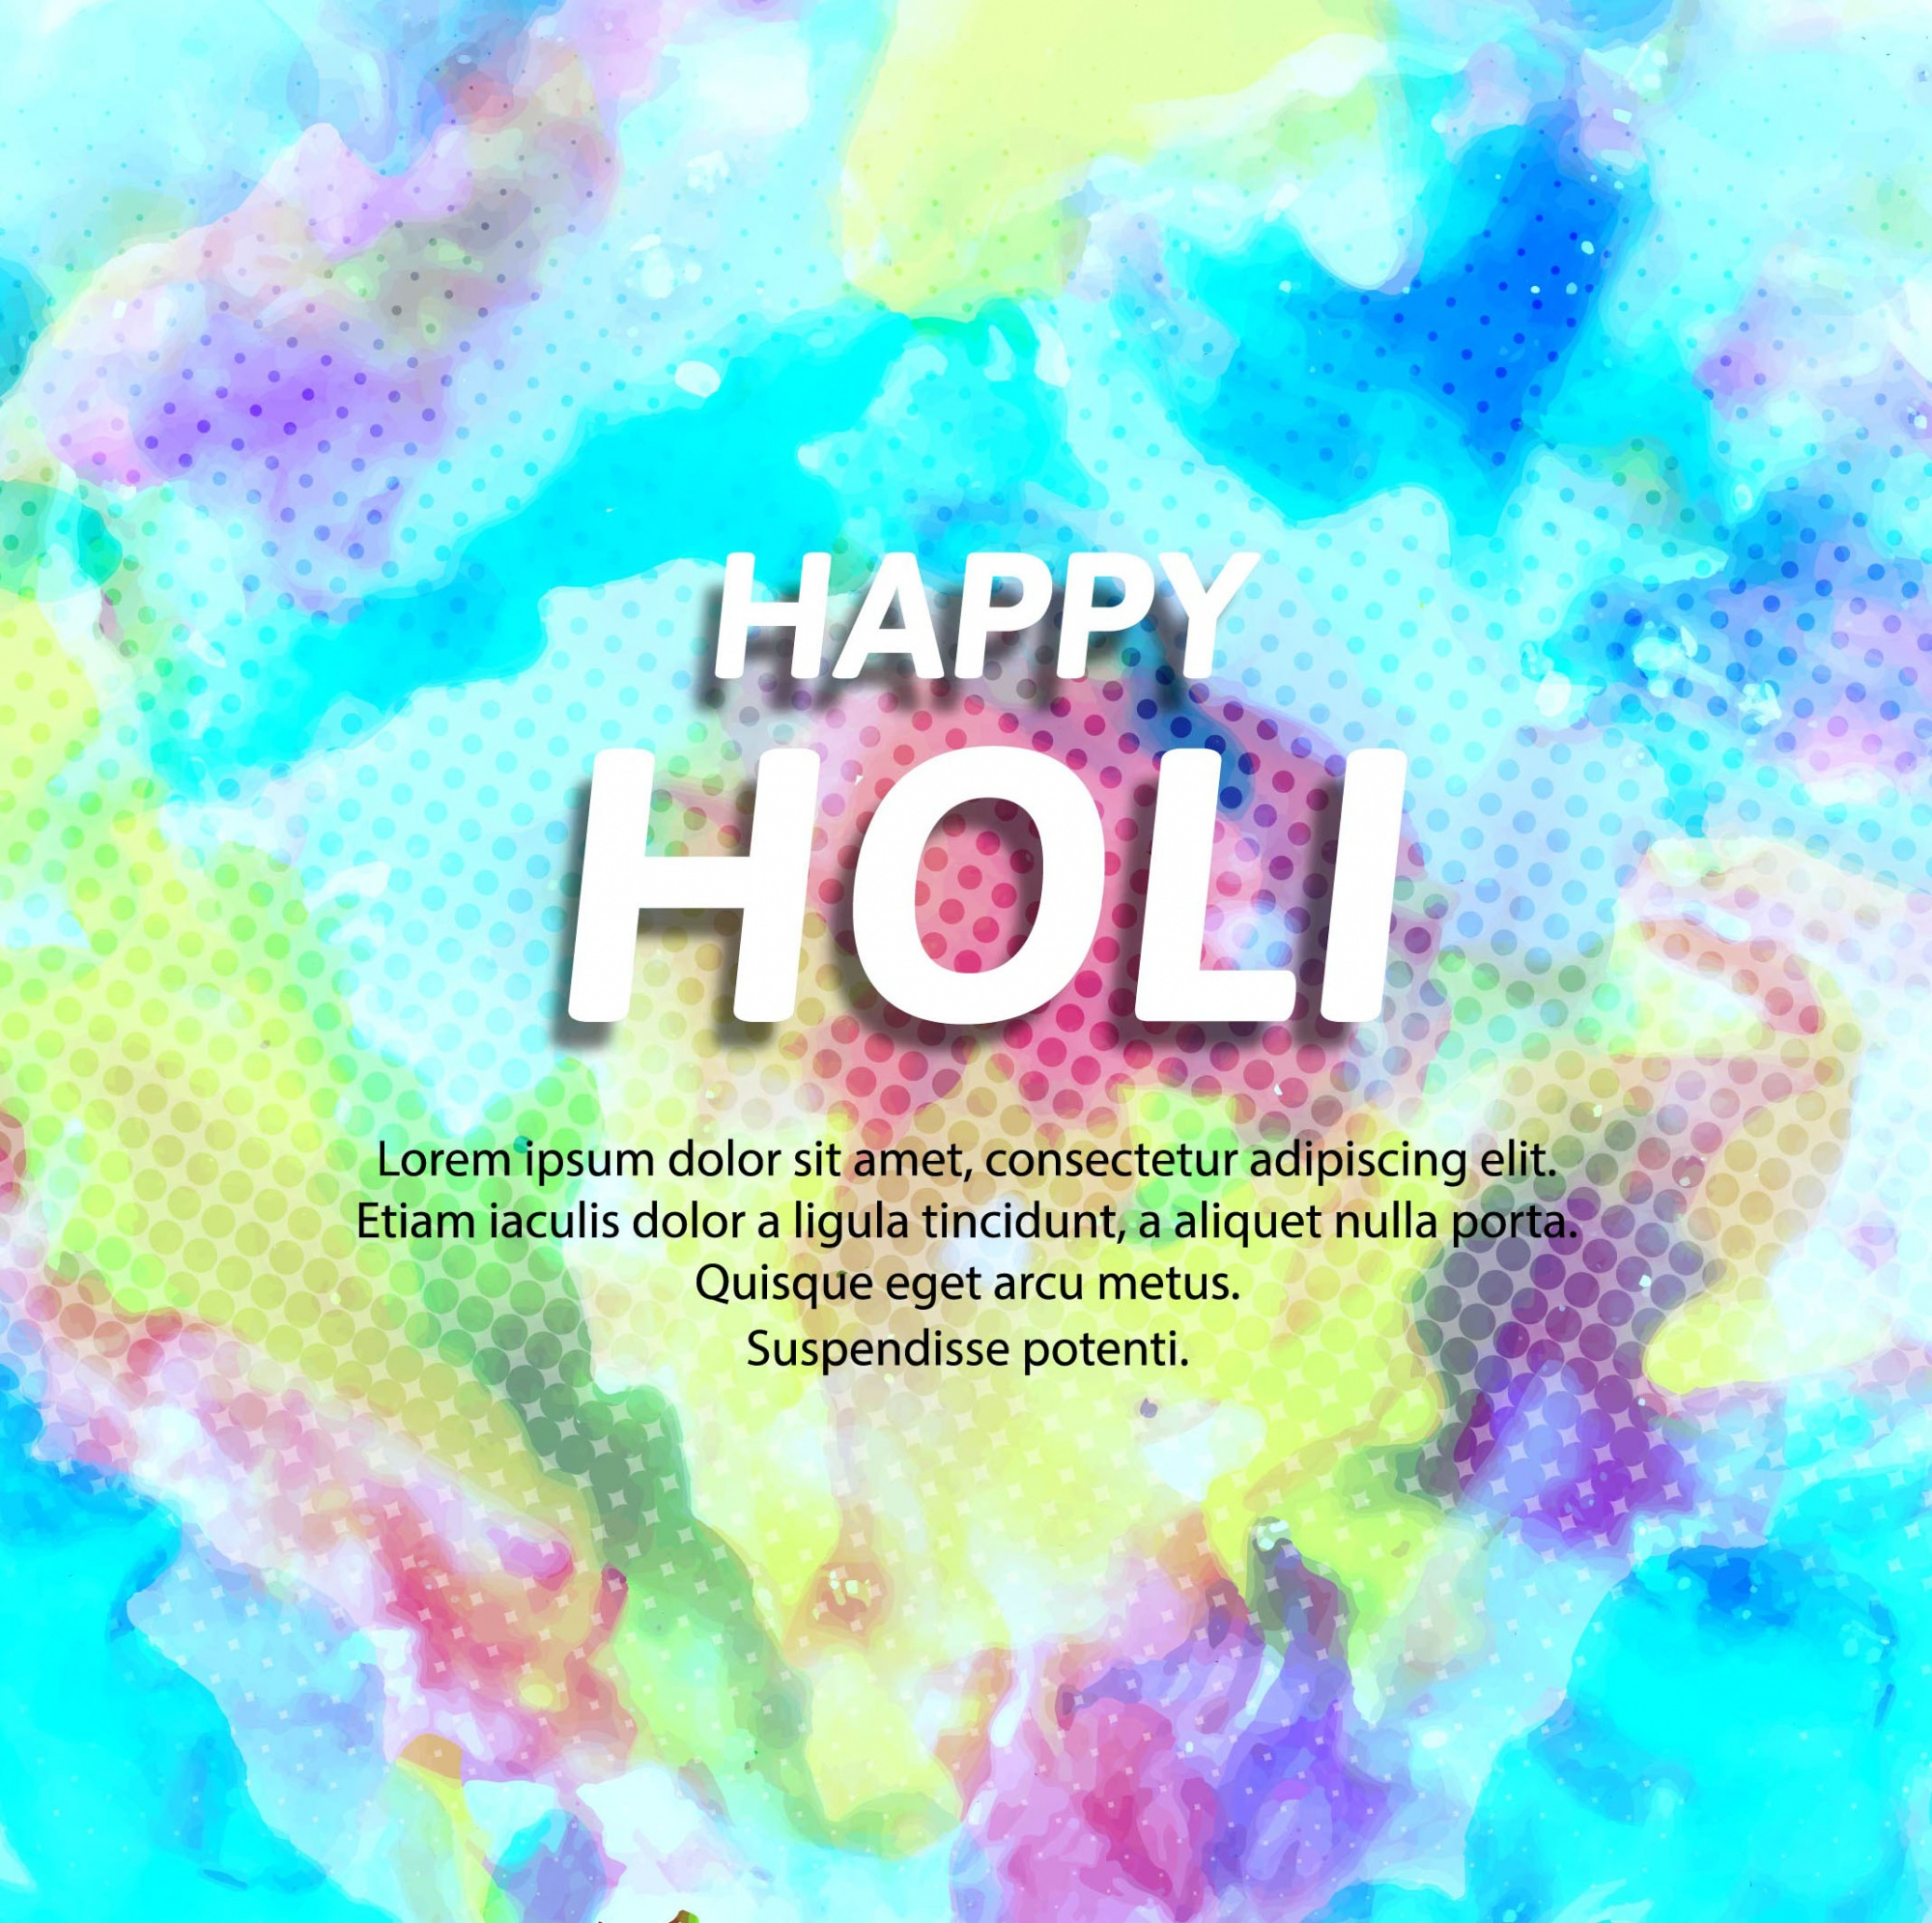 Background with blue tones for holi festival